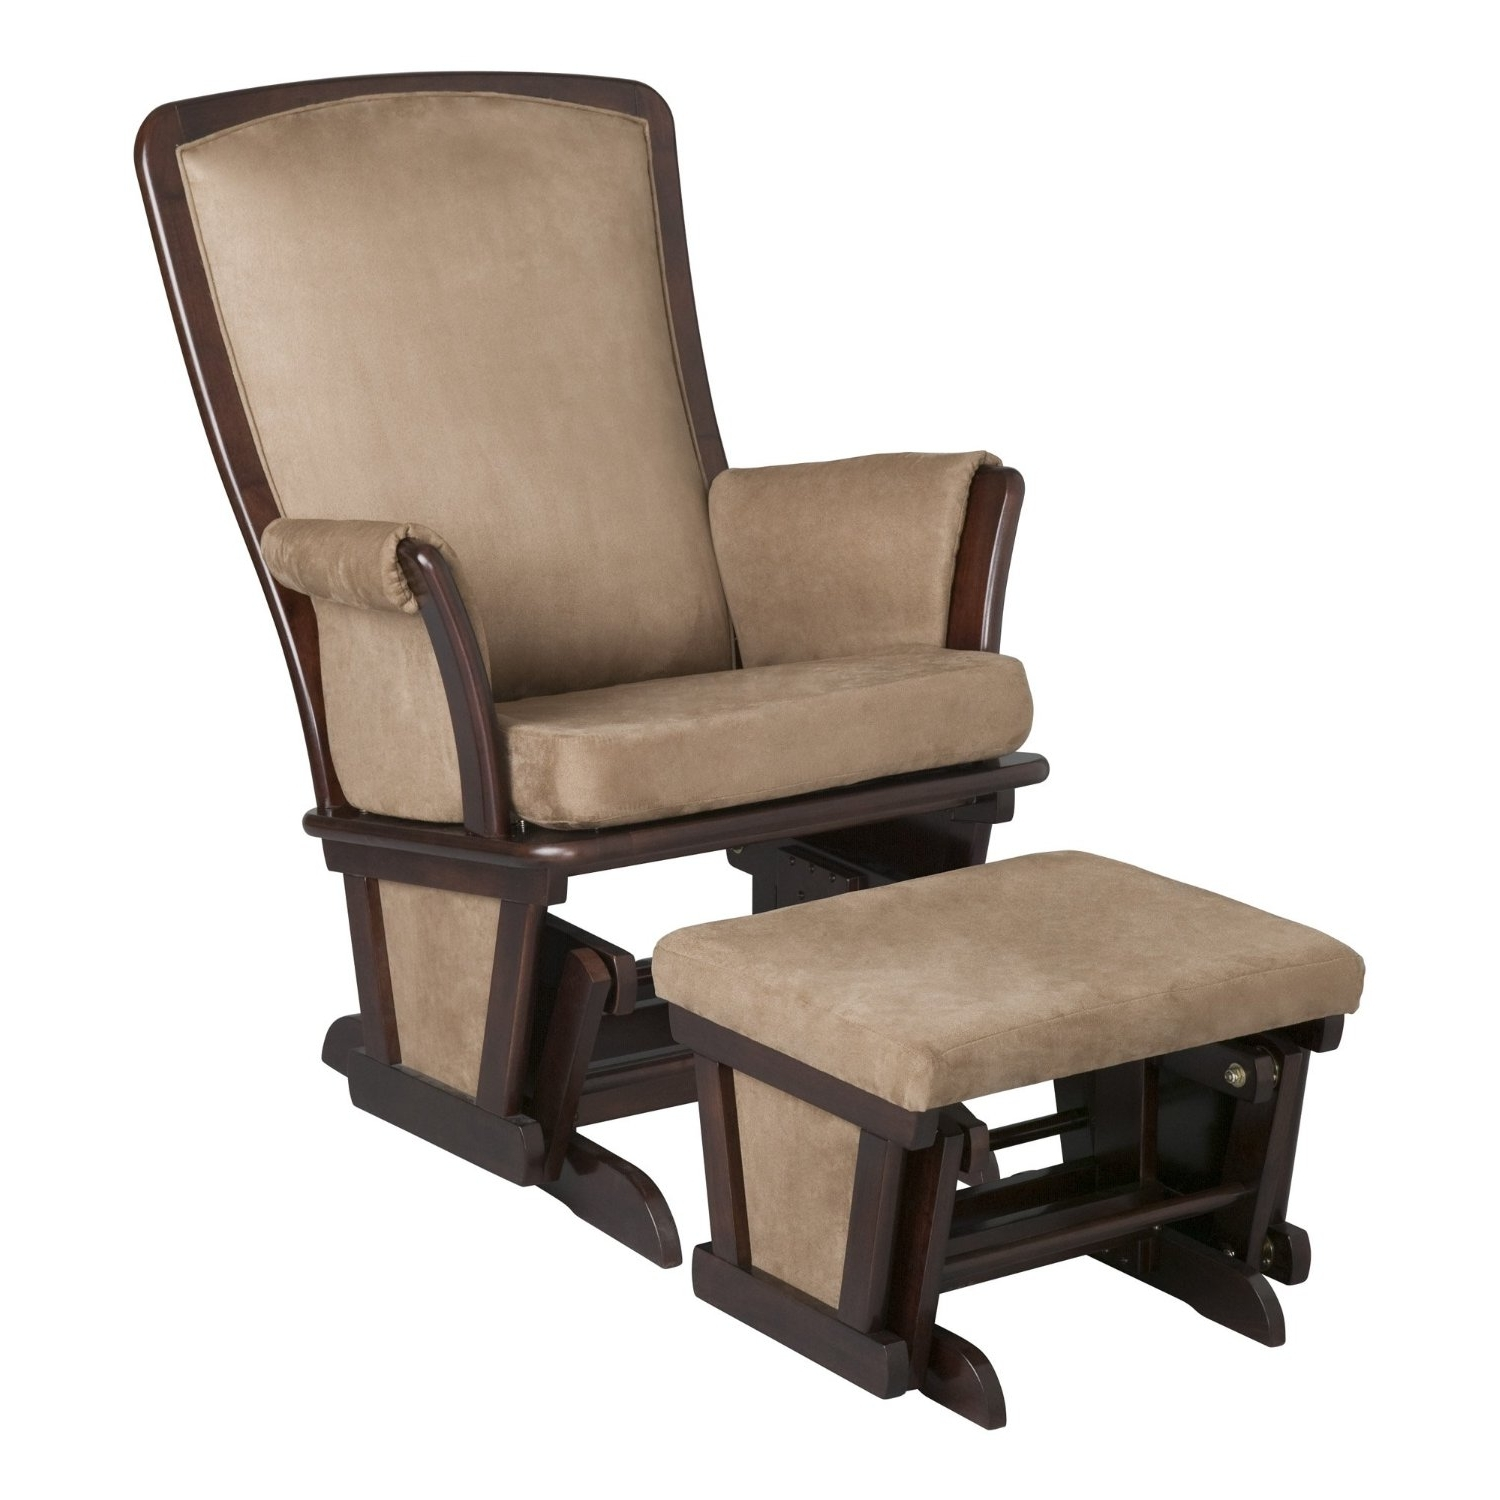 Rocking Chairs With Ottoman With Regard To Most Recent Furniture: Best Rated Nursery Gliders,rocking Chairs Reviews  (View 10 of 15)